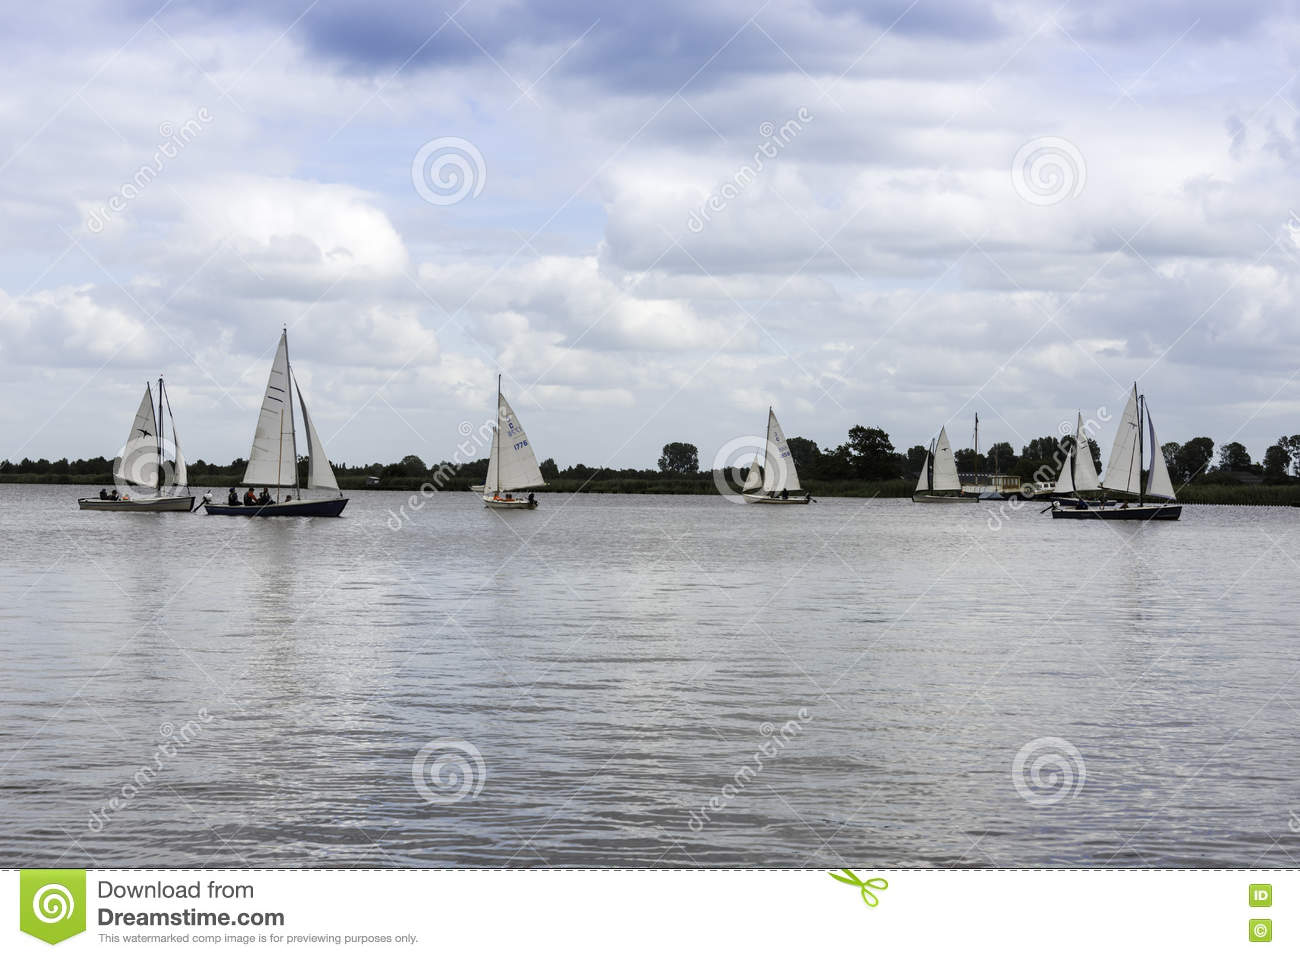 Sailing boats on the river editorial stock photo. Image of ...